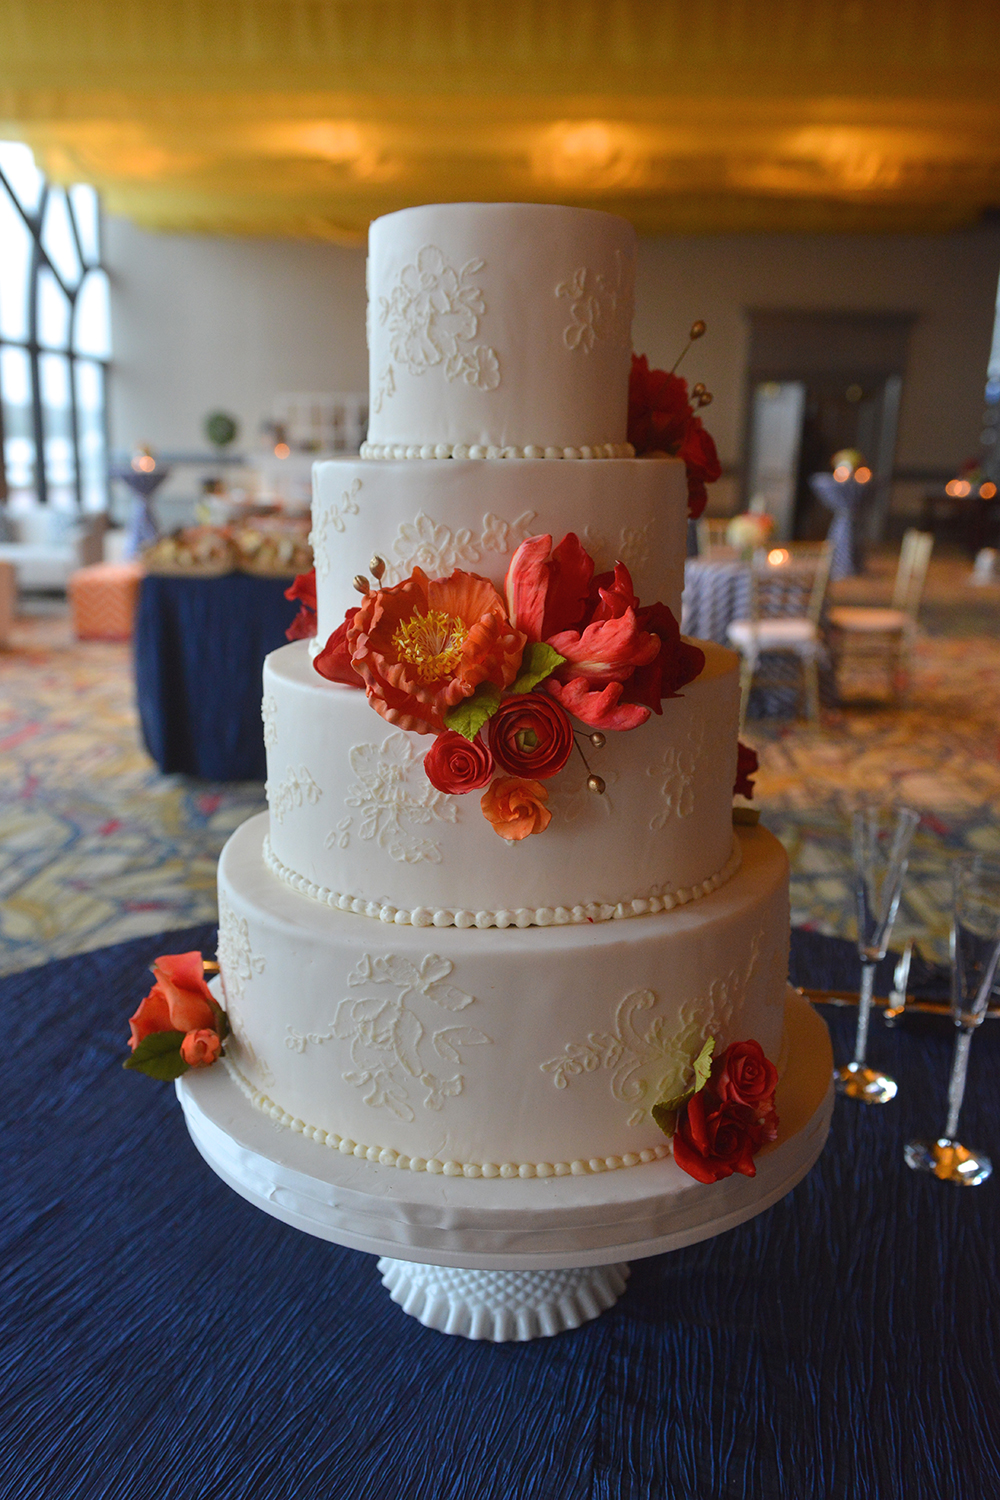 A Savannah Wedding Cake by Kelli Corn